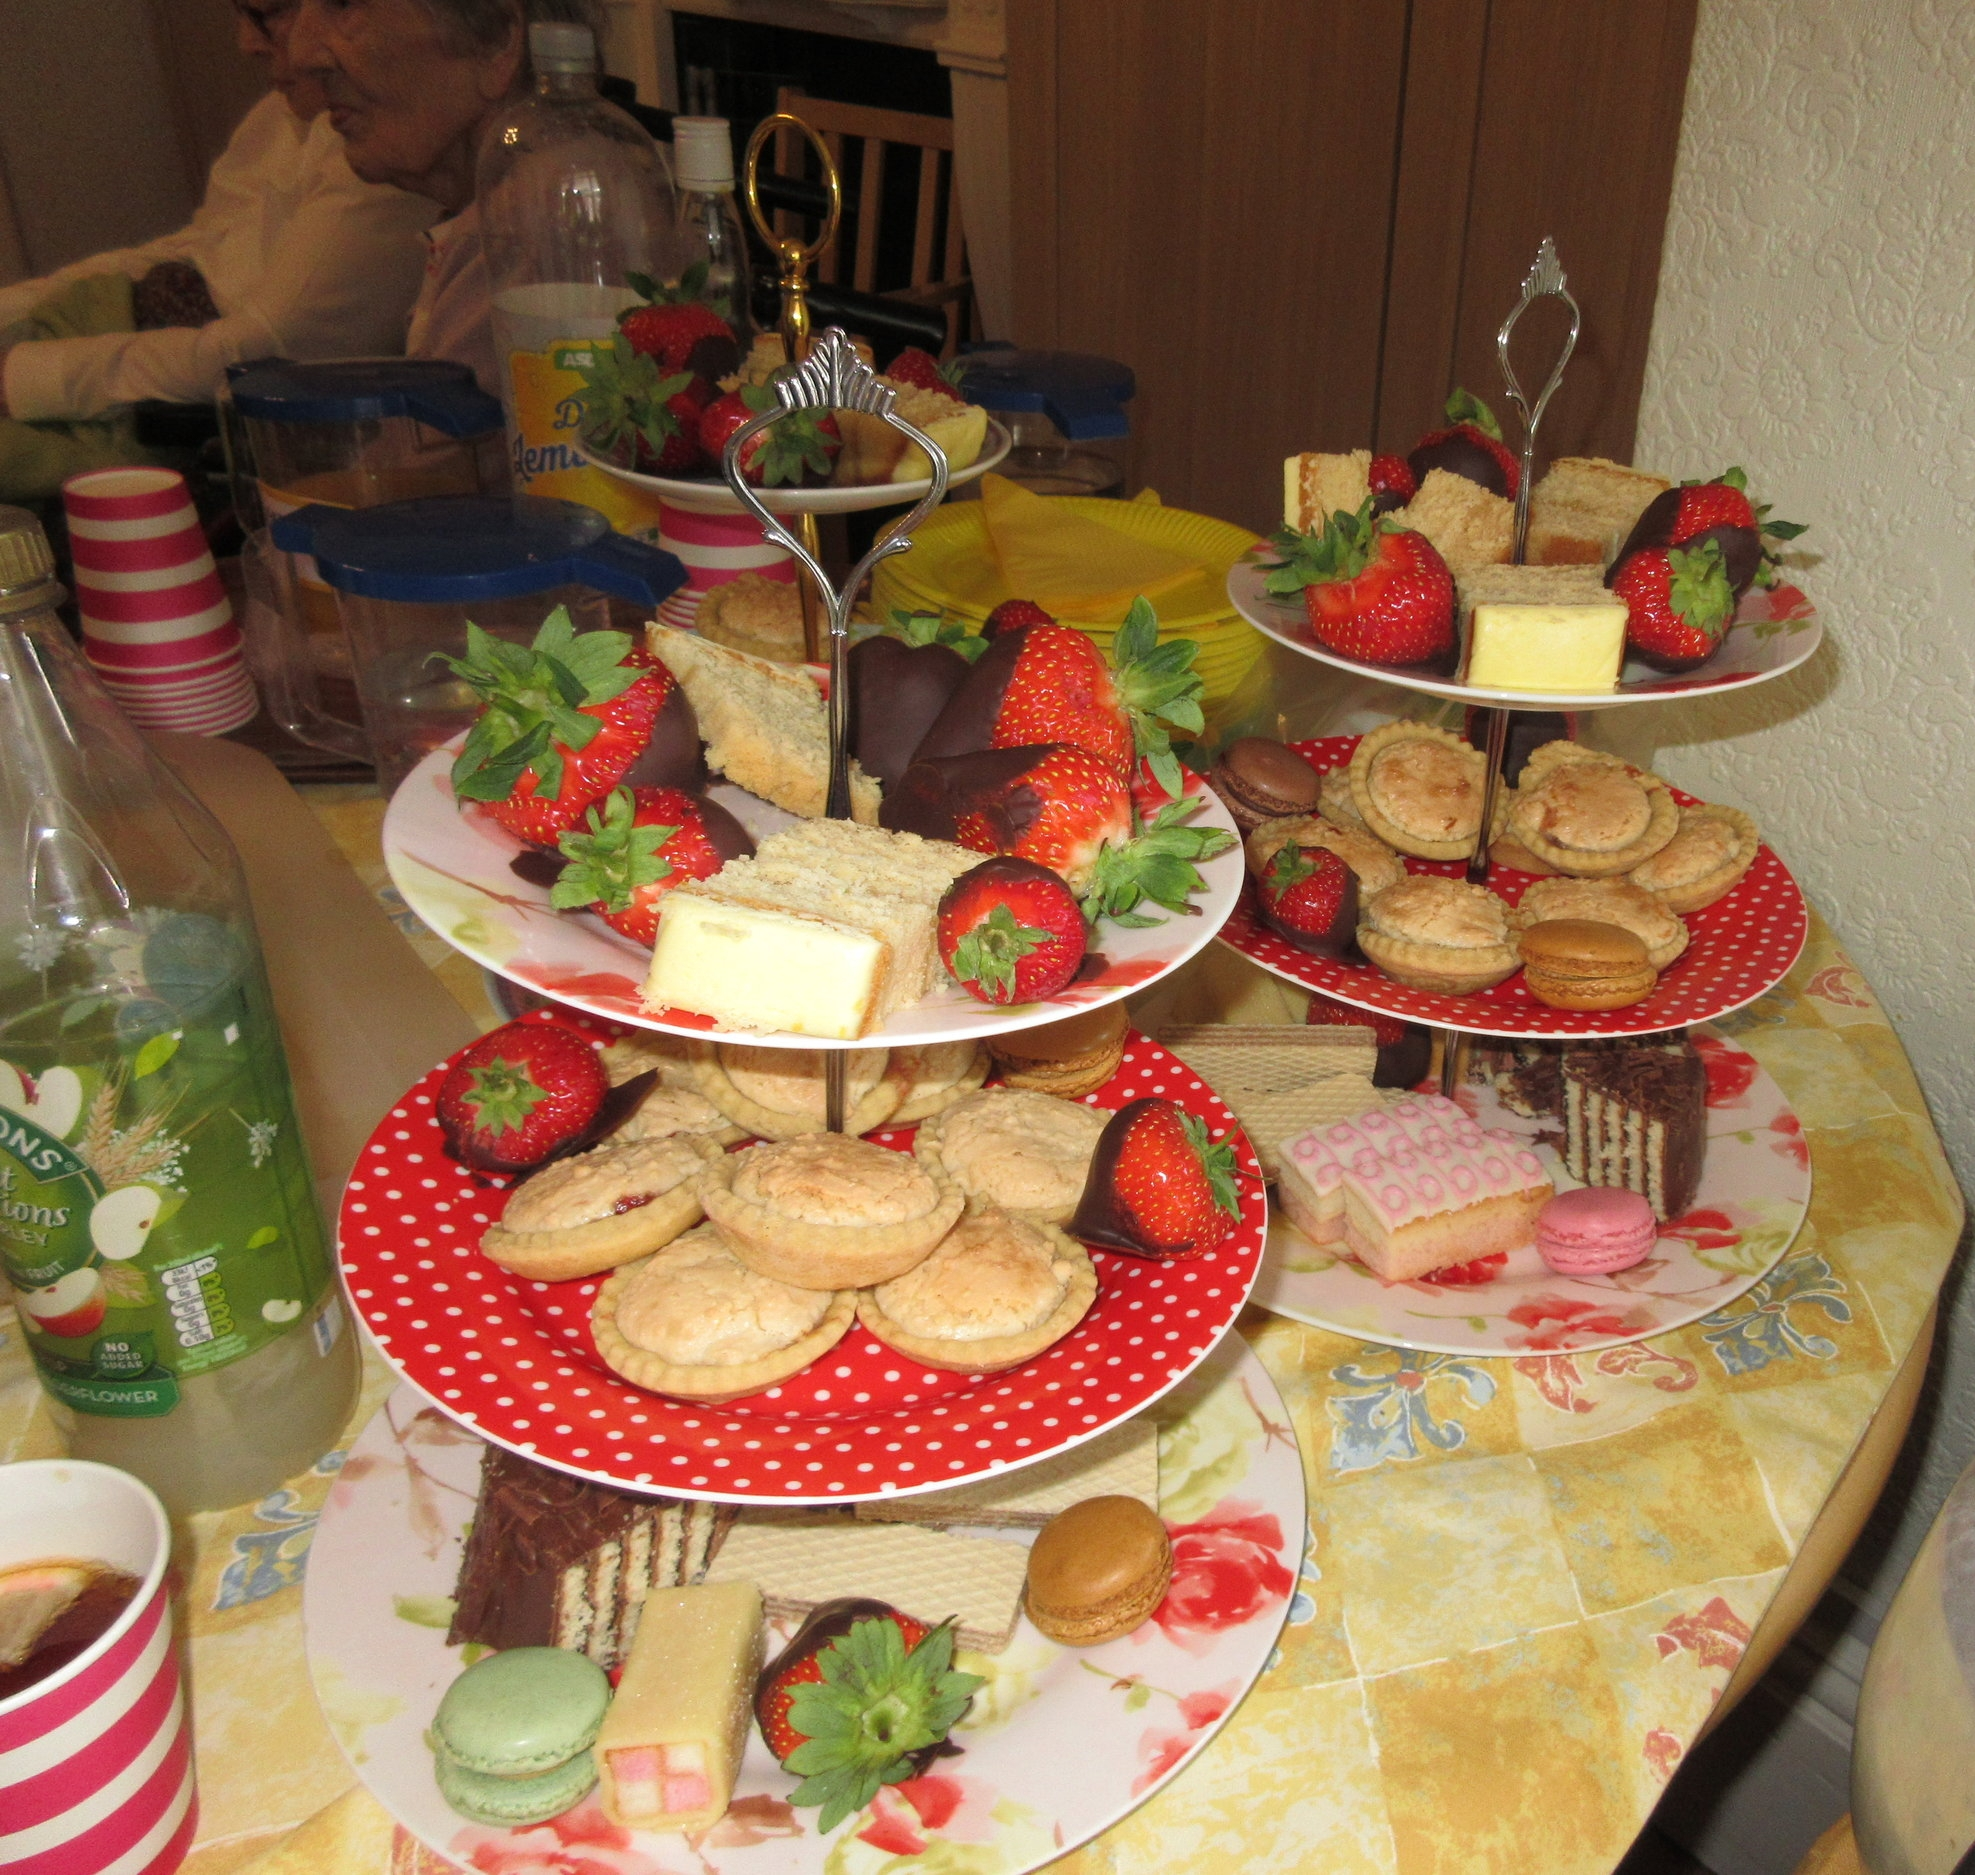 The fundraising included afternoon tea and…